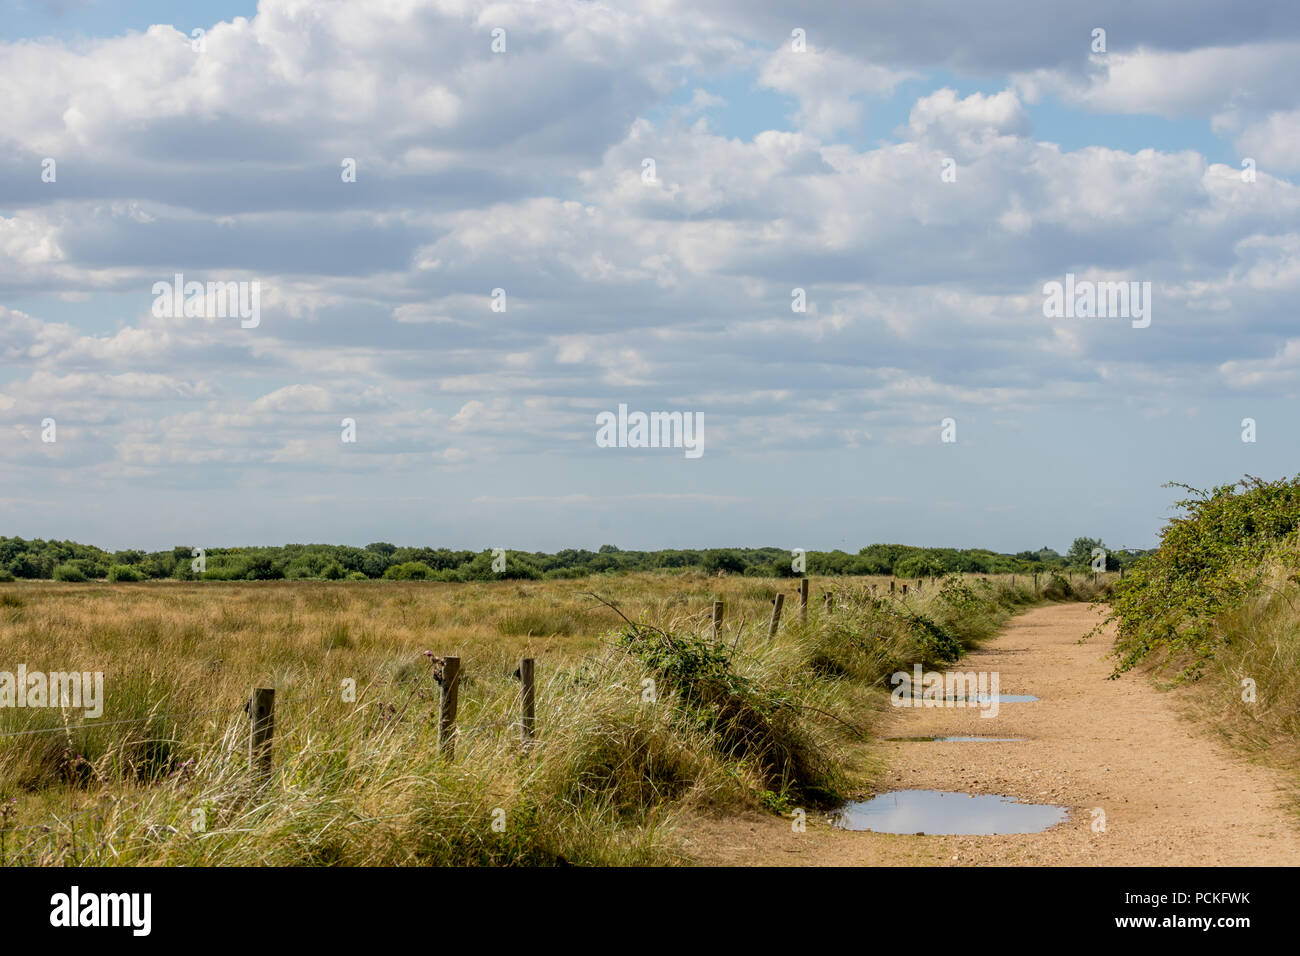 Norfolk landscape of heathland, big sky with fluffy clouds, and sandy footpath with puddles. - Stock Image